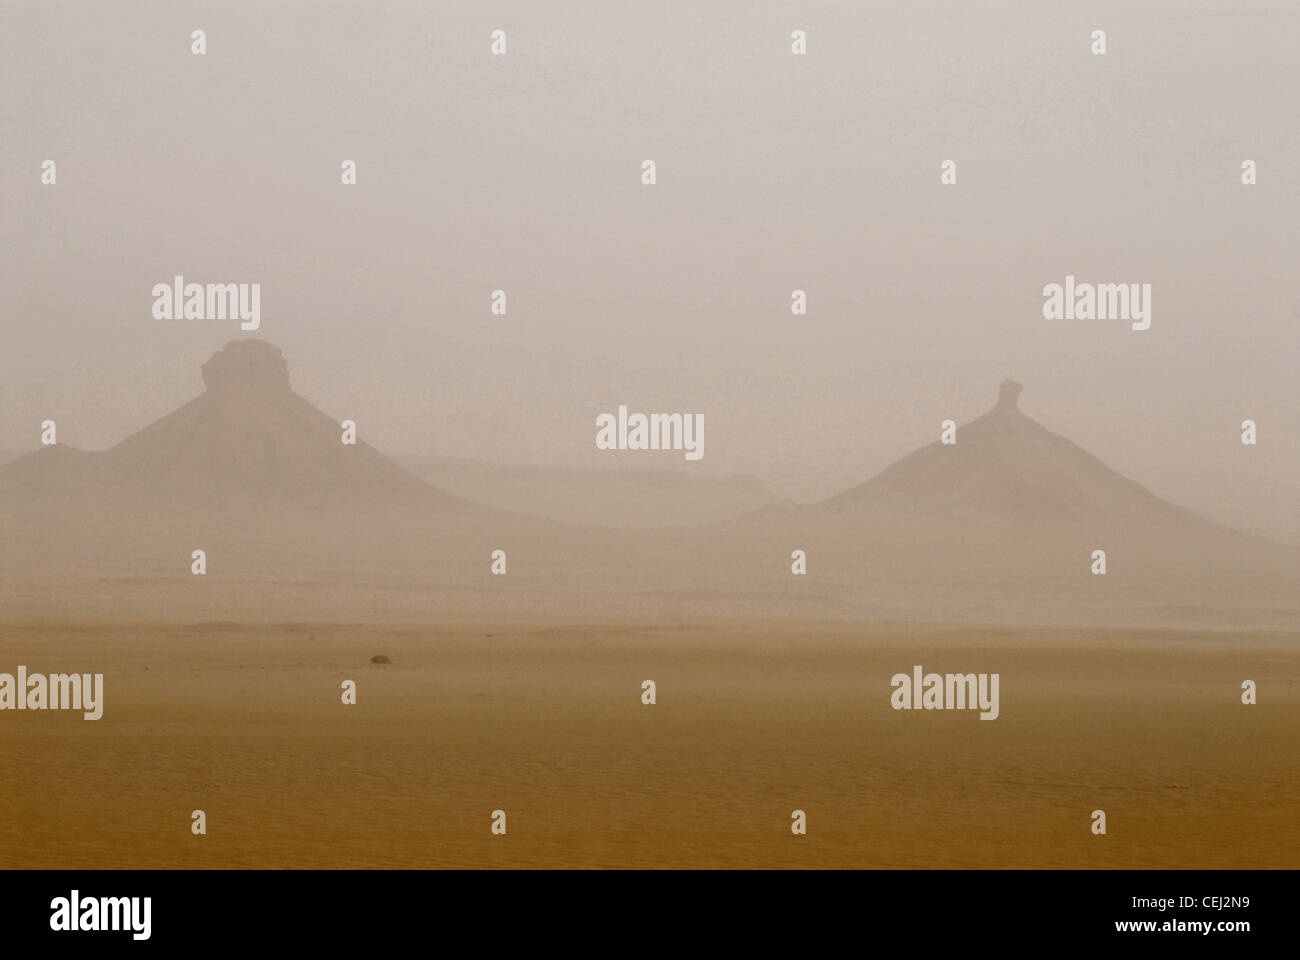 A sand-storm in the desert haze. - Stock Image